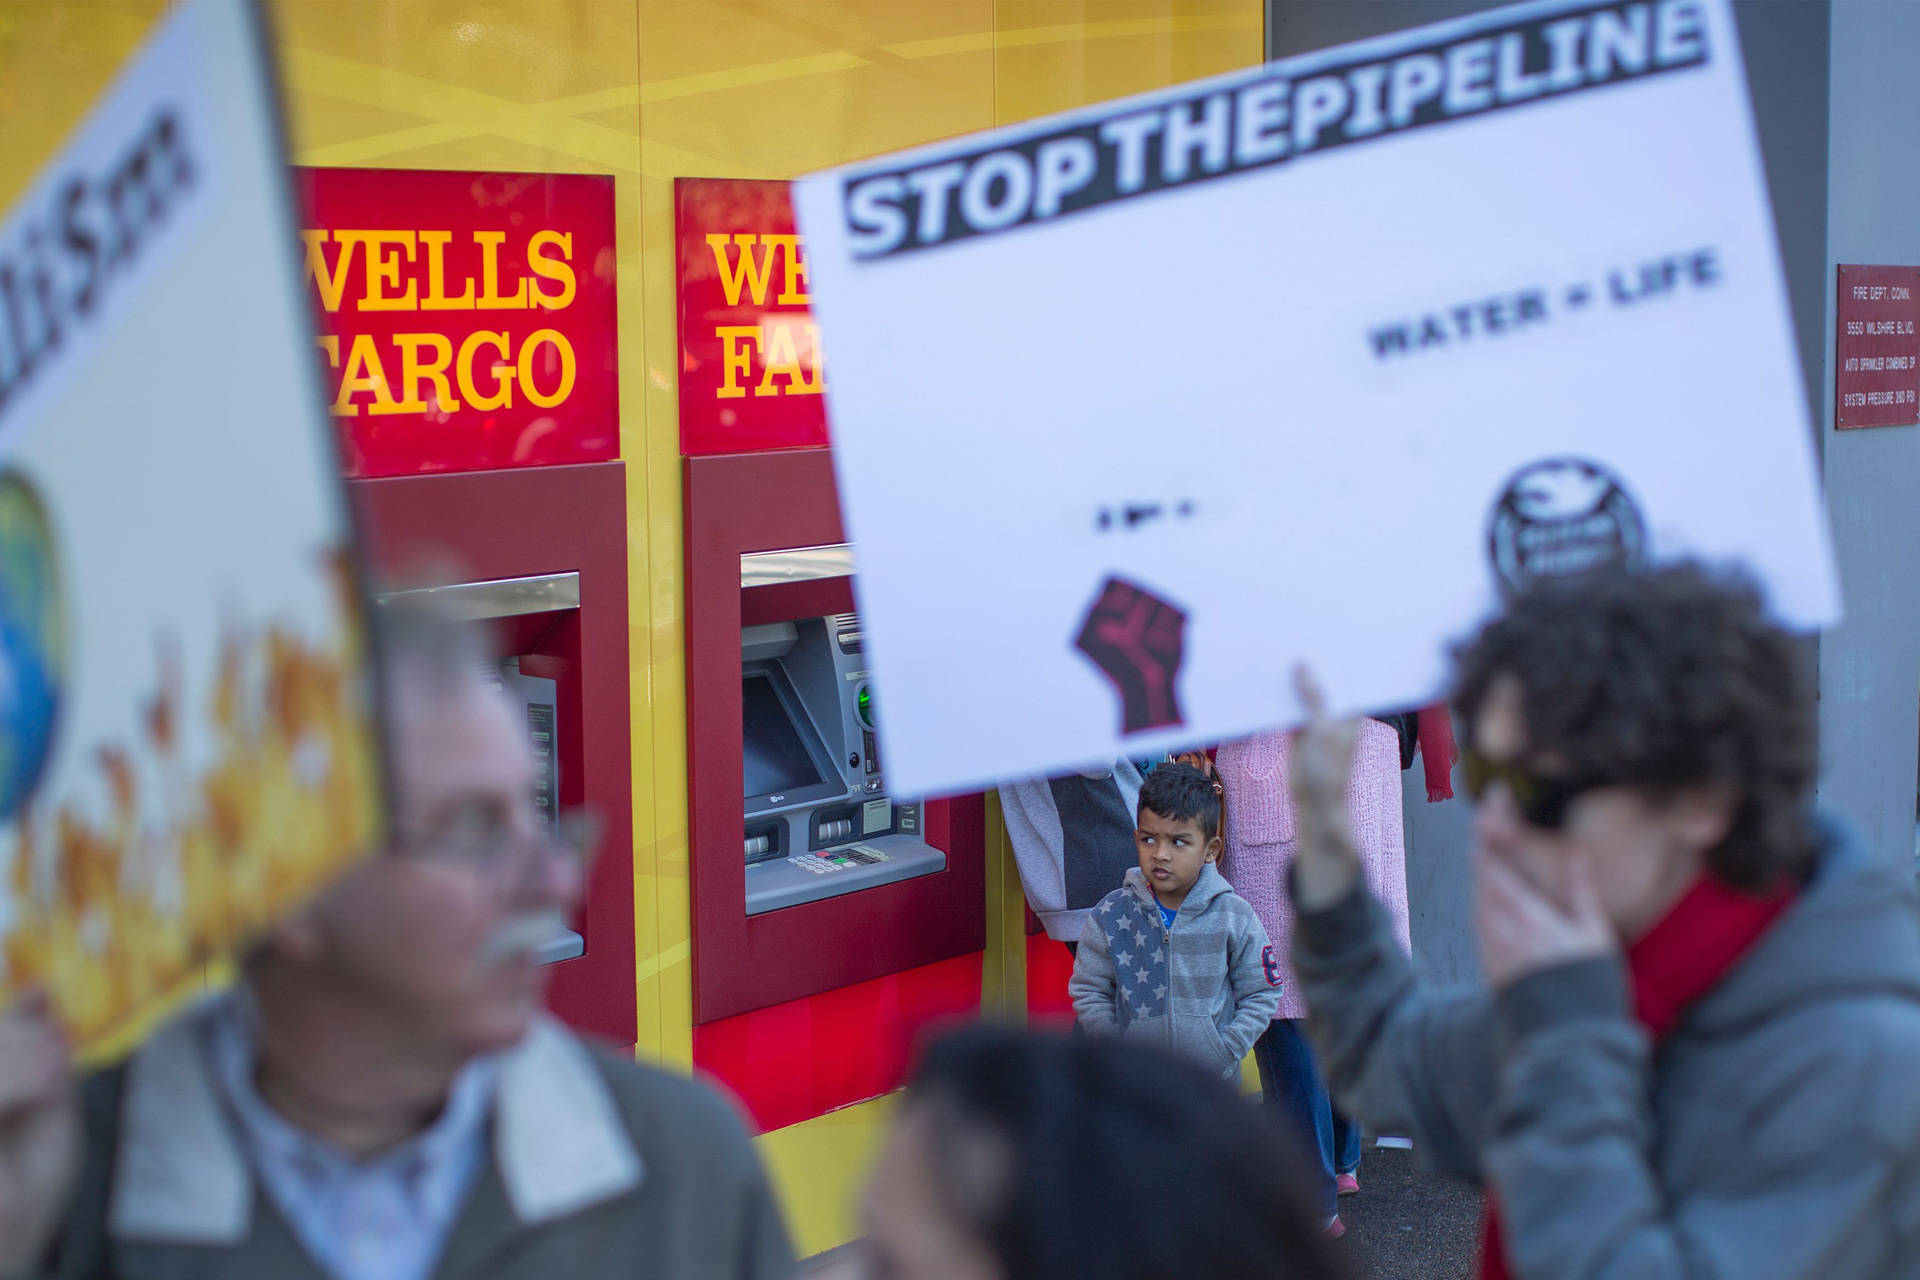 Supporters of the Standing Rock Water Protectors call on banks to divest from the Dakota Access Pipeline in a protest outside a Wells Fargo branch in Los Angeles on Dec. 16, 2016. David McNew/AFP/Getty Images